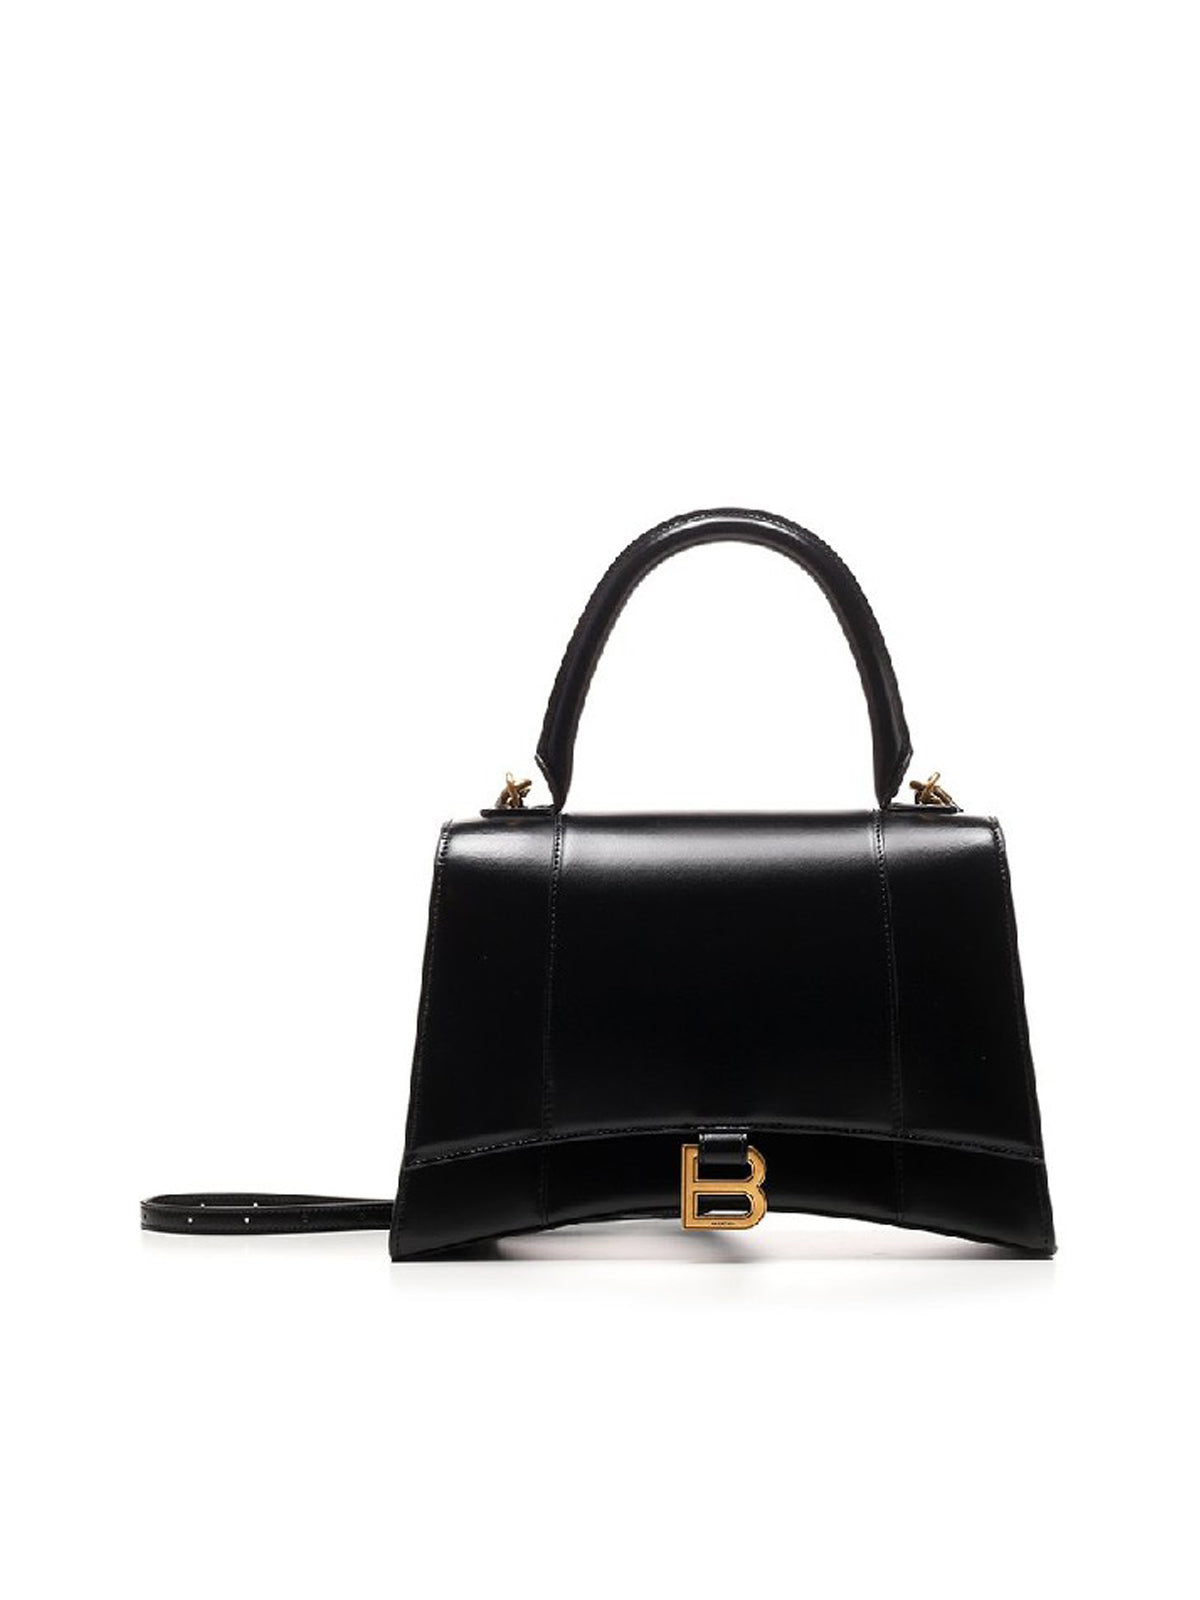 Balenciaga Hourglass Medium Top Handle Bag In Black